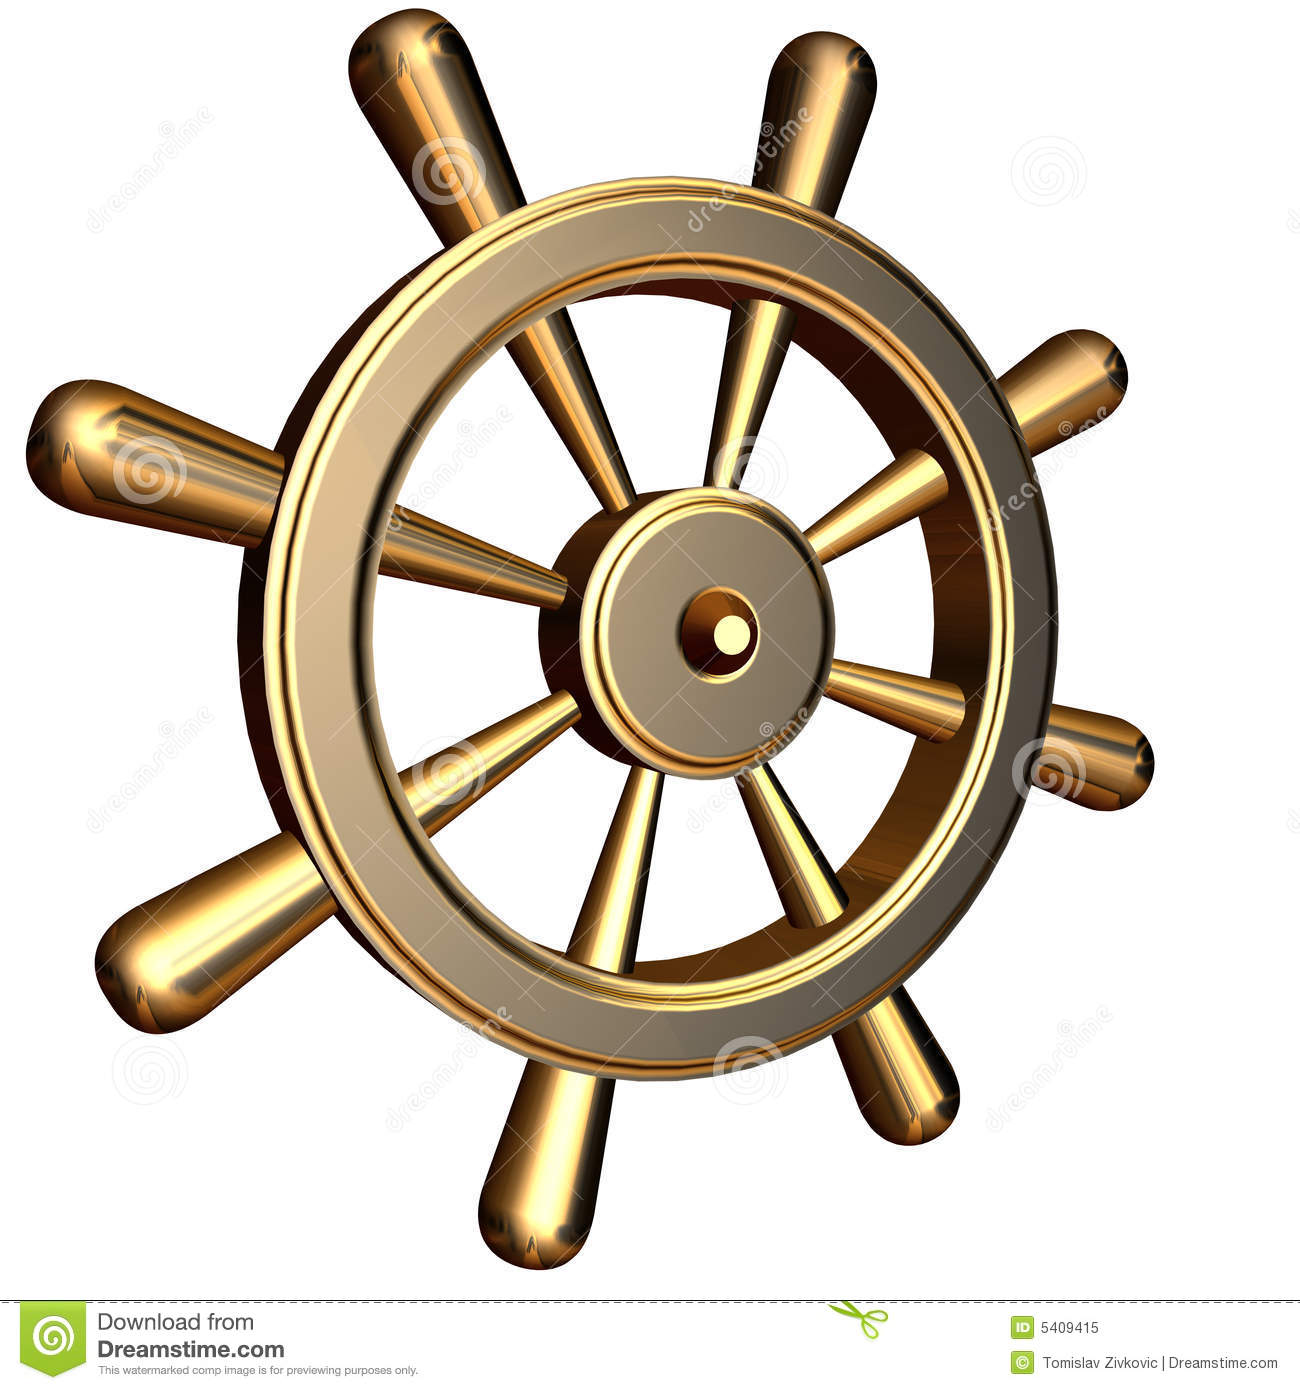 clipart ship steering wheel - photo #29